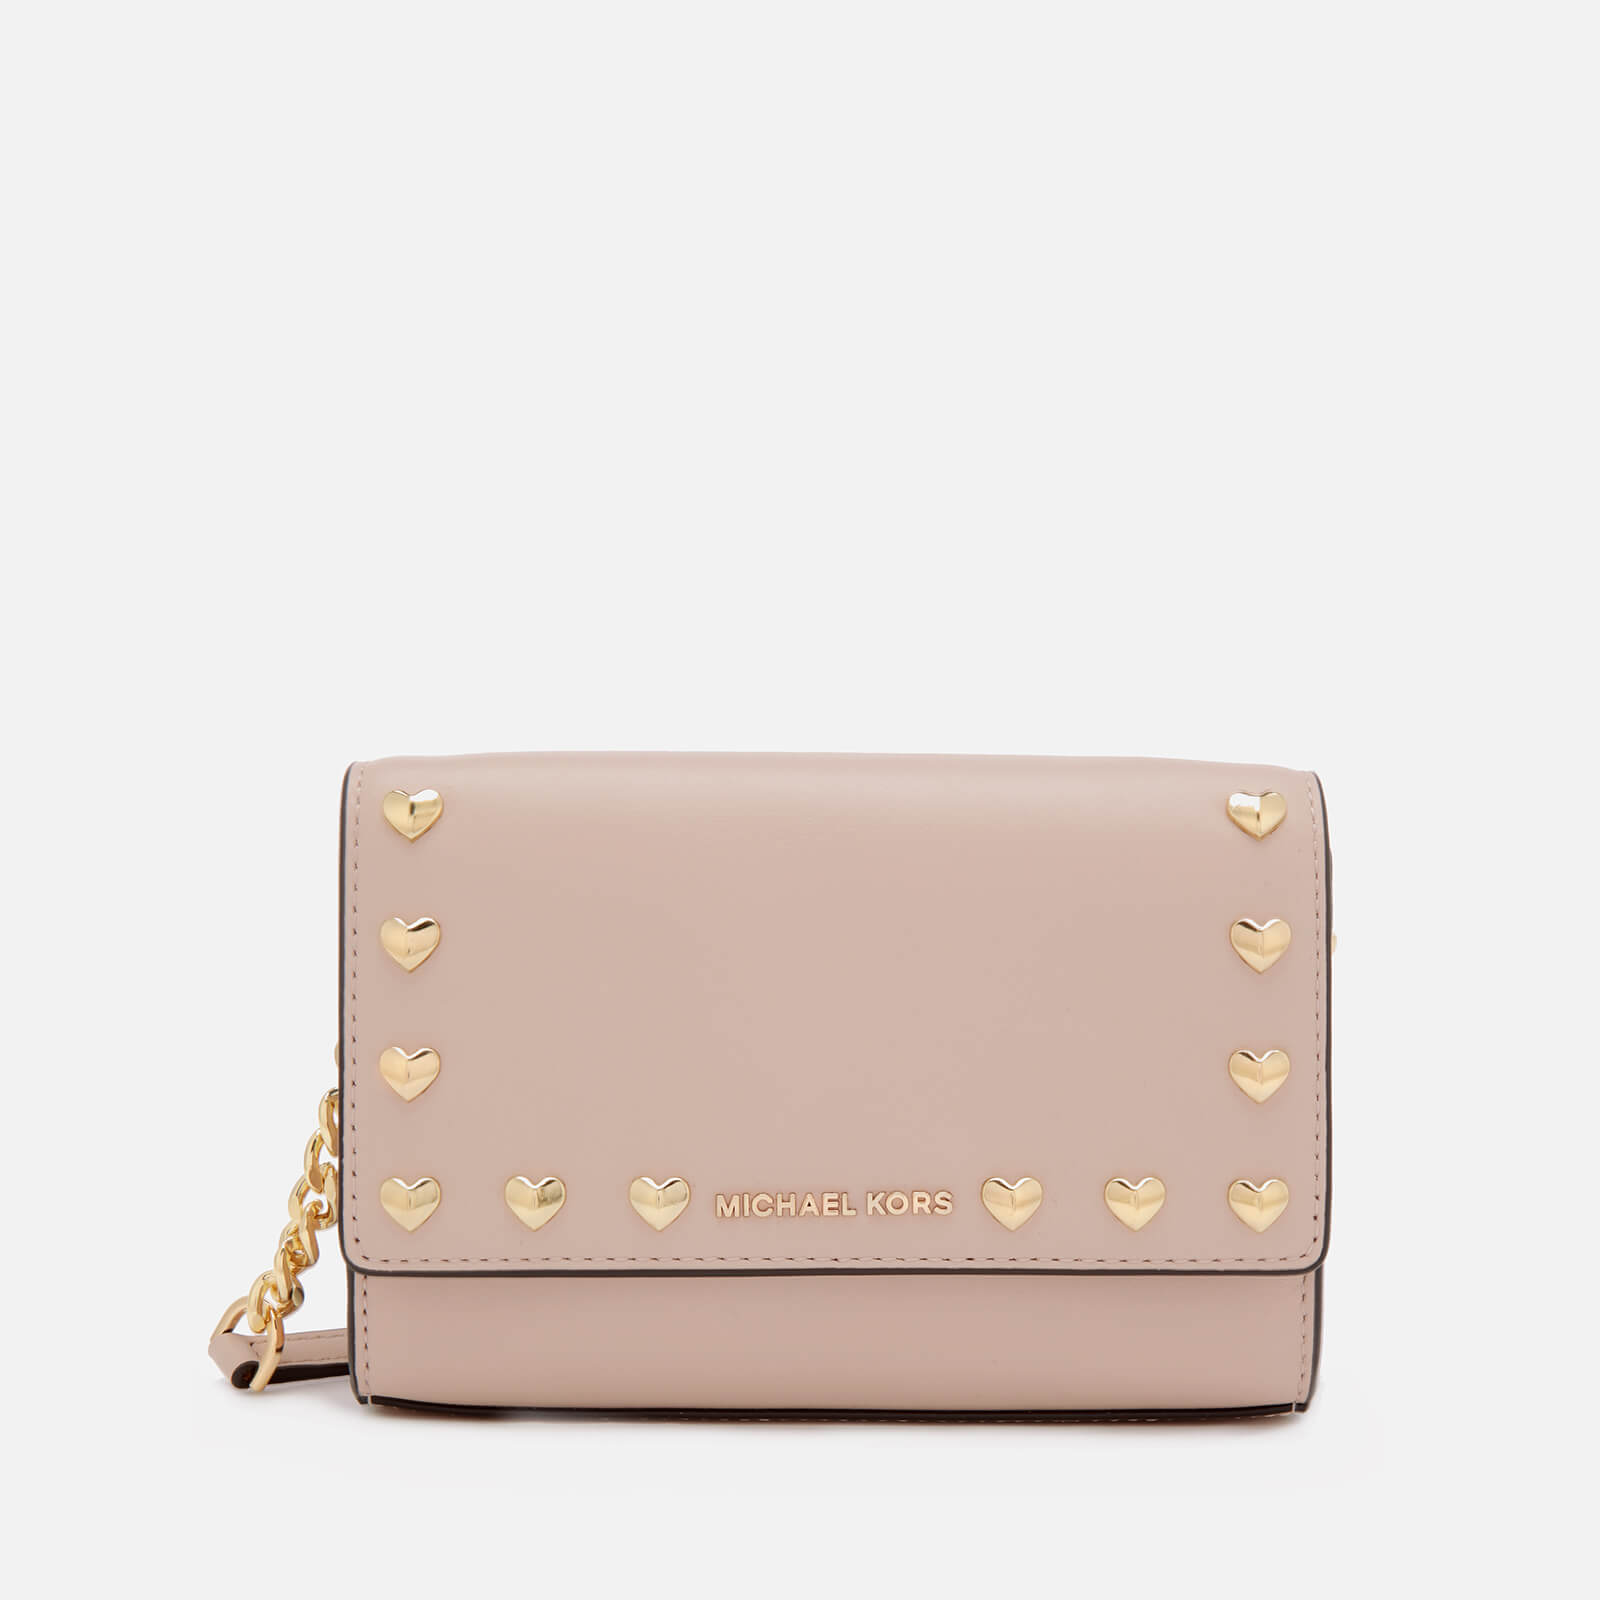 53b4c10aaa95 MICHAEL MICHAEL KORS Women s Ruby Medium Clutch Bag - Soft Pink - Free UK  Delivery over £50